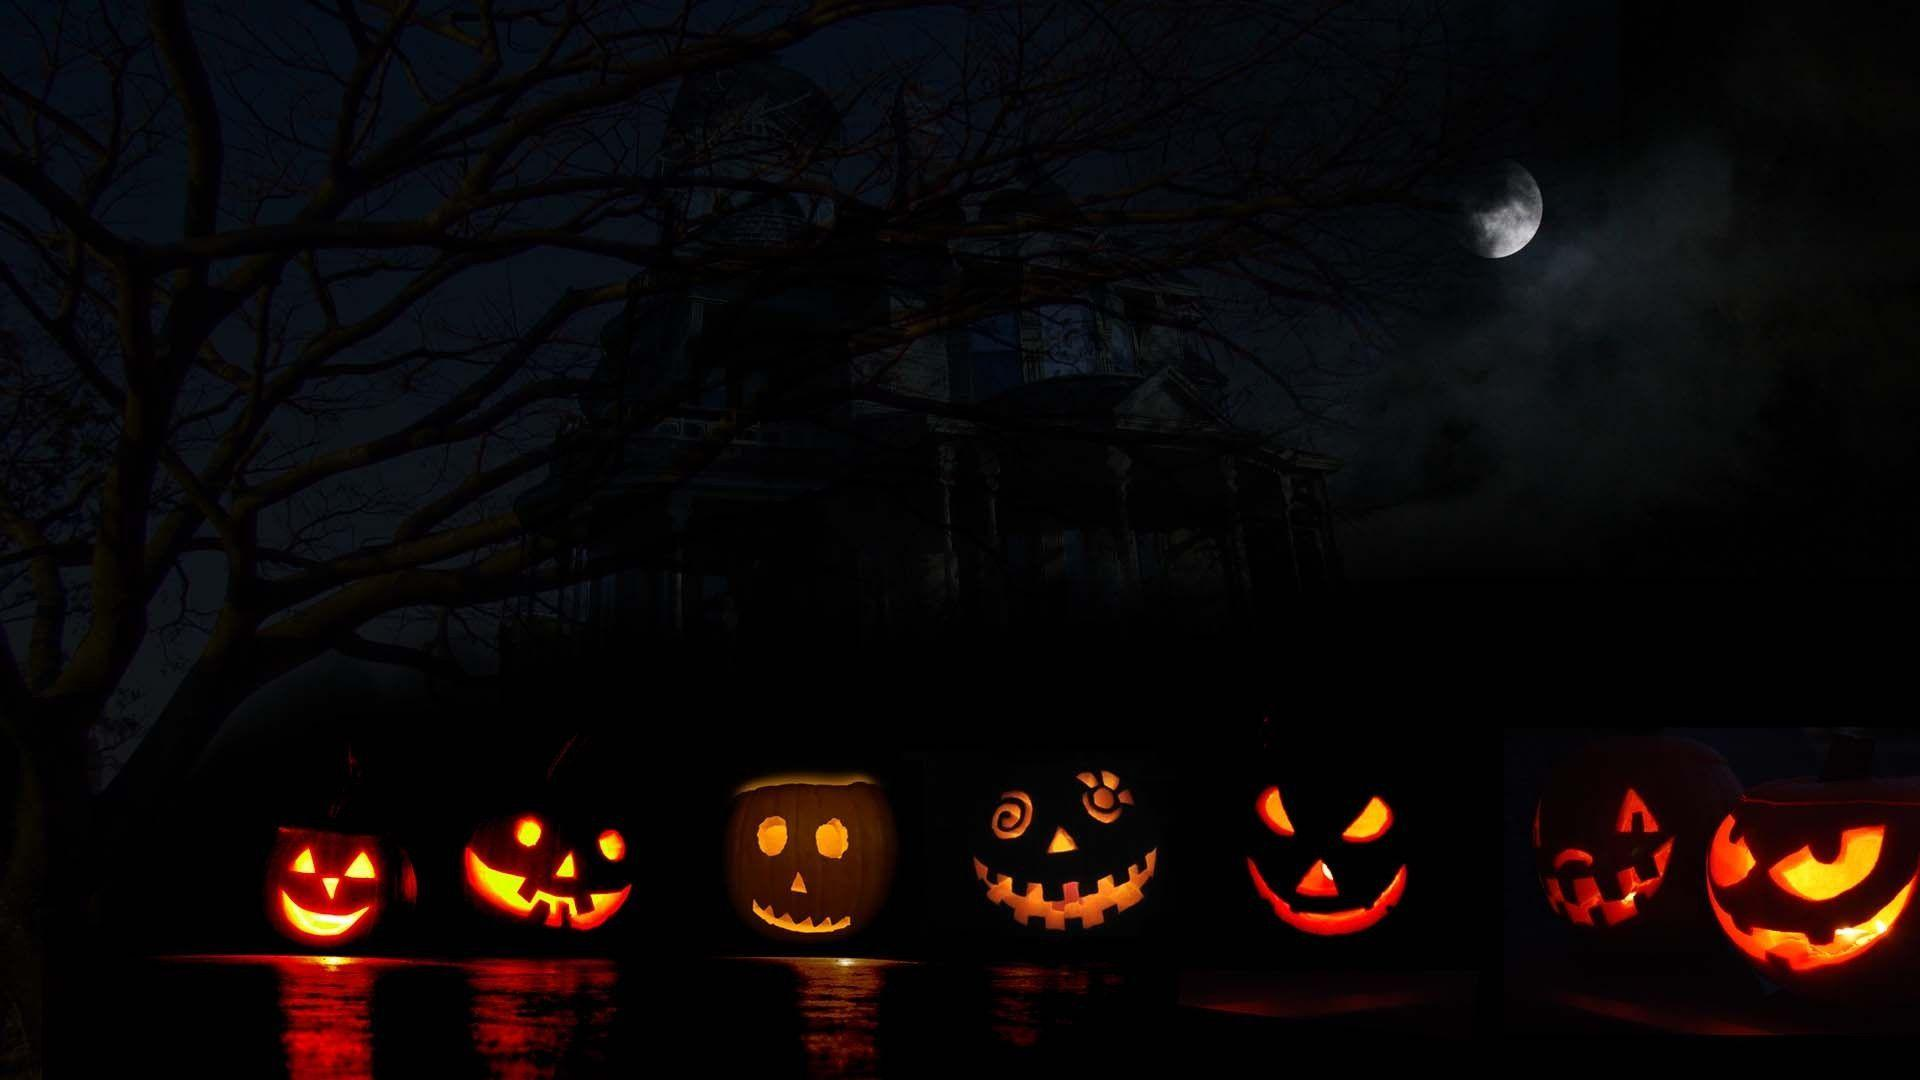 1920x1080 Hd Halloween Wallpapers Top Free 1920x1080 Hd